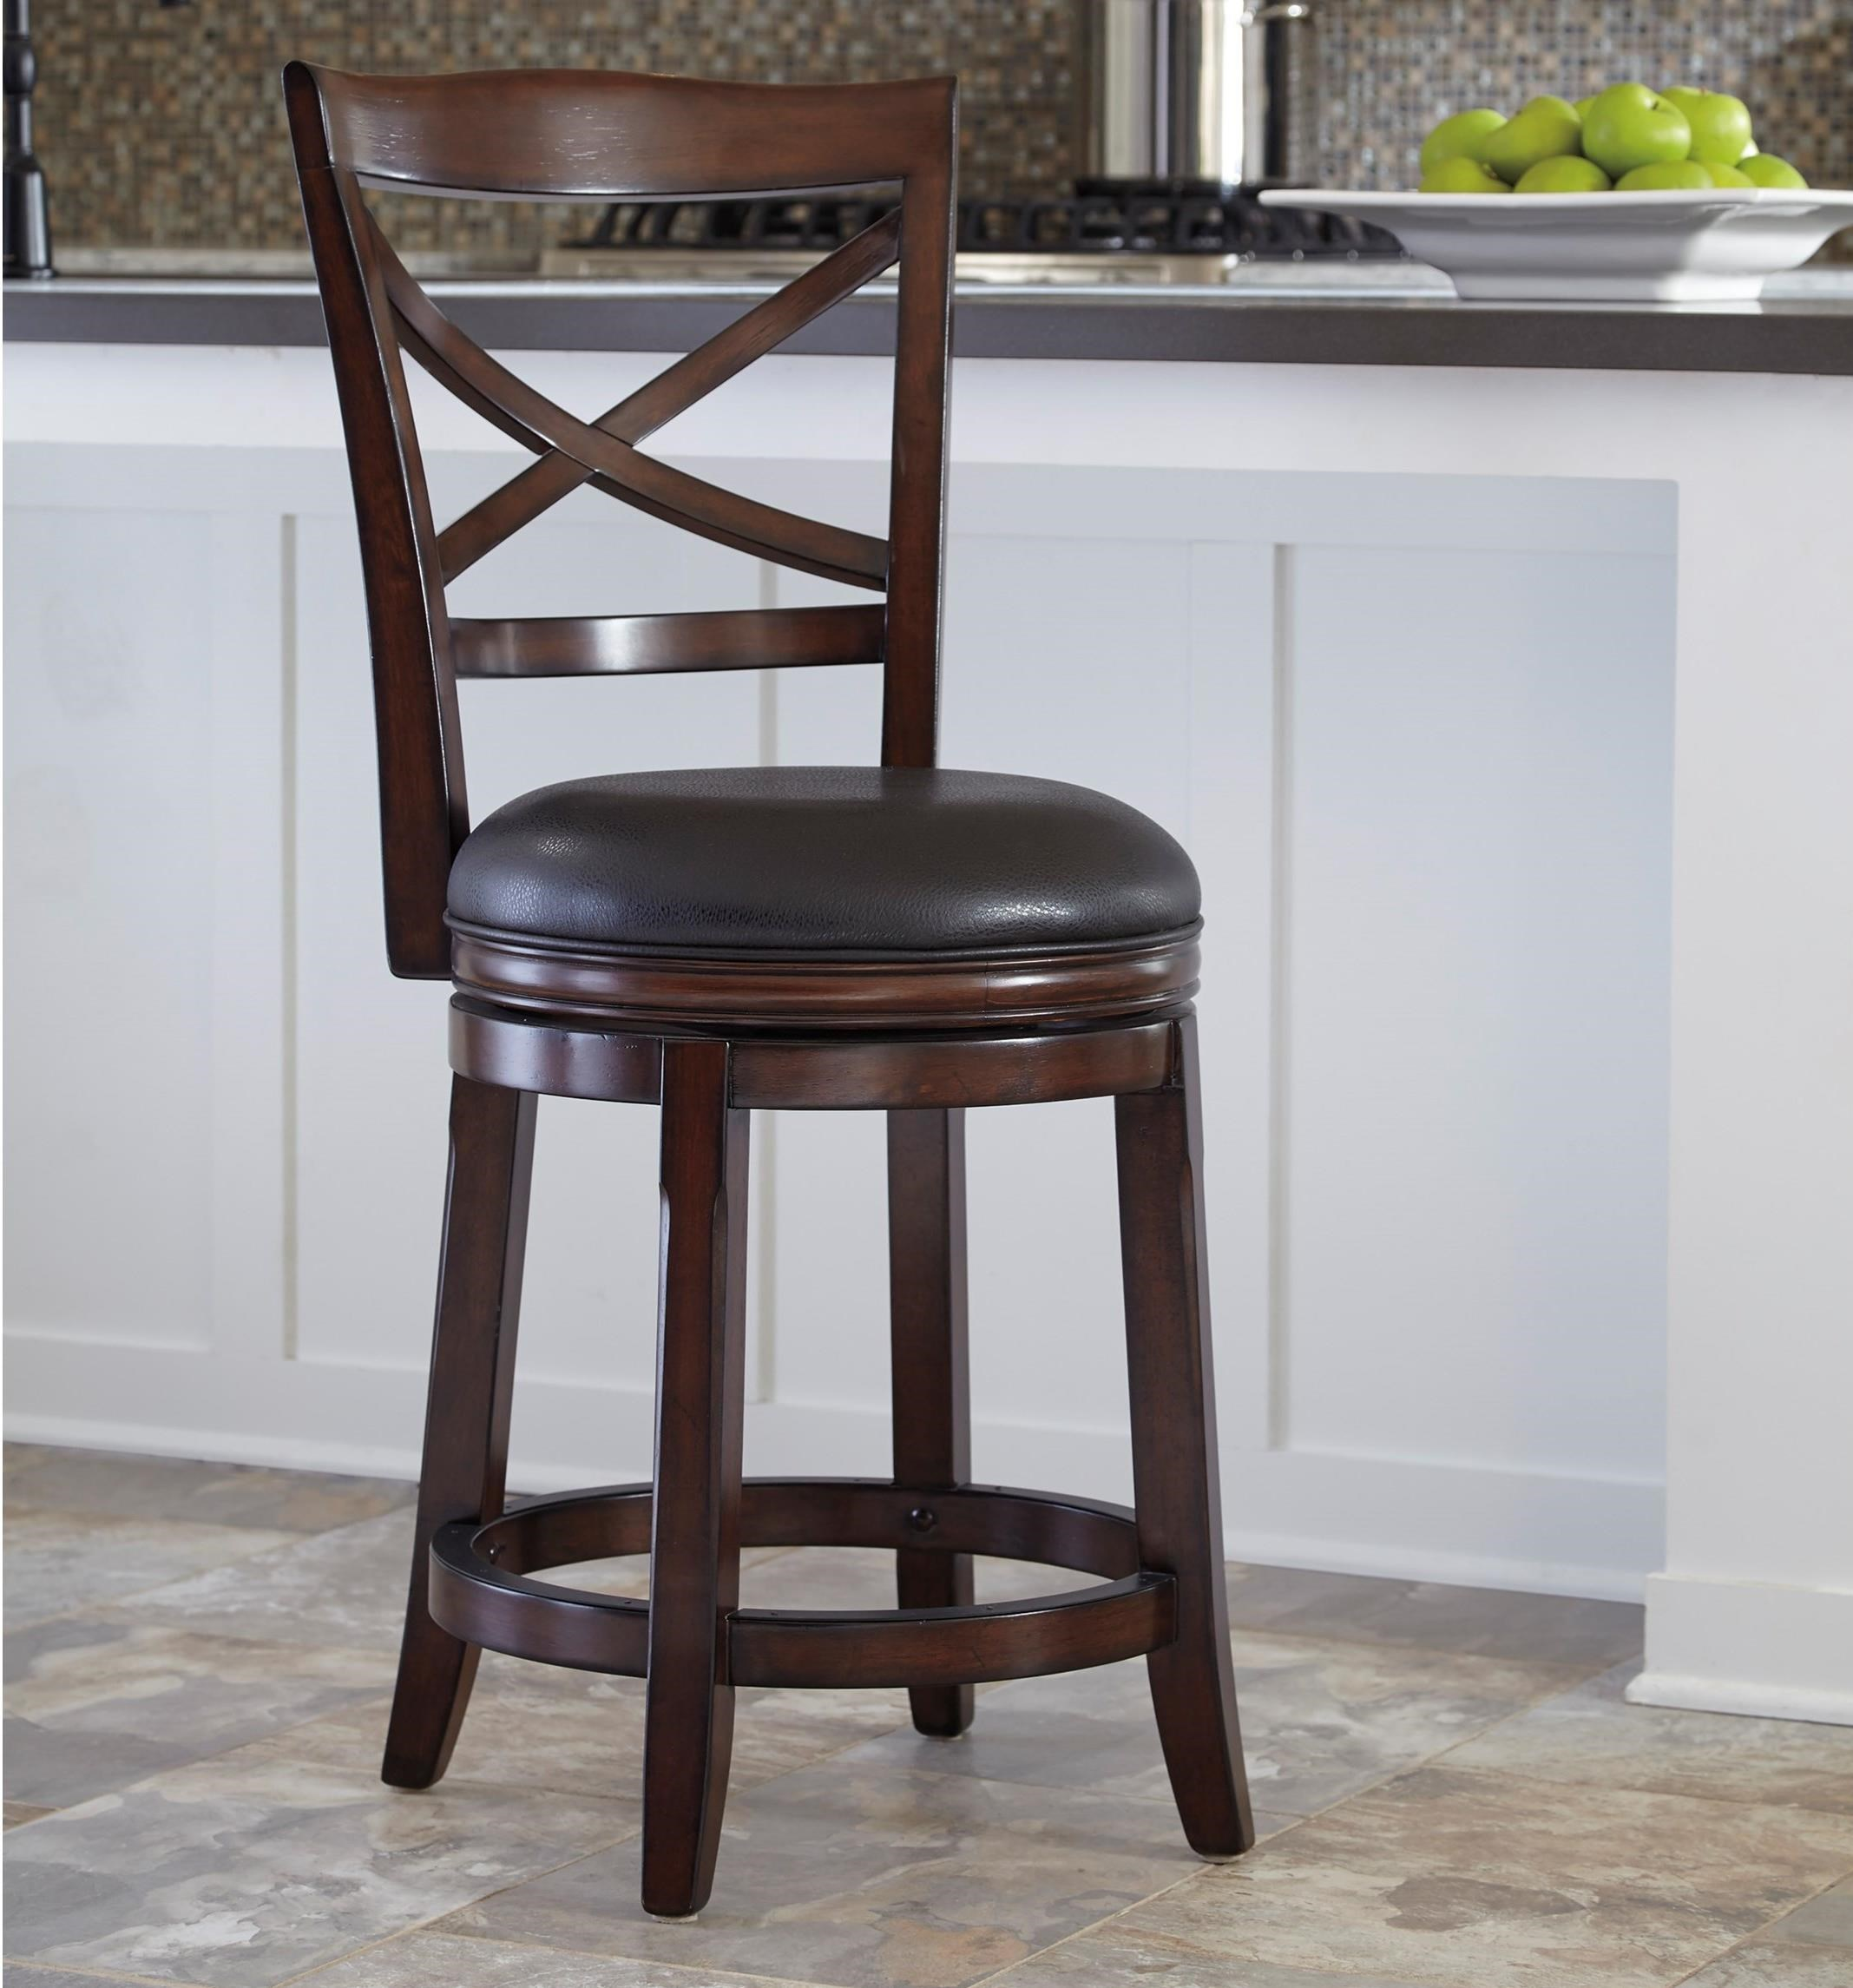 Porter Upholstered Swivel Barstool by Millennium at Standard Furniture